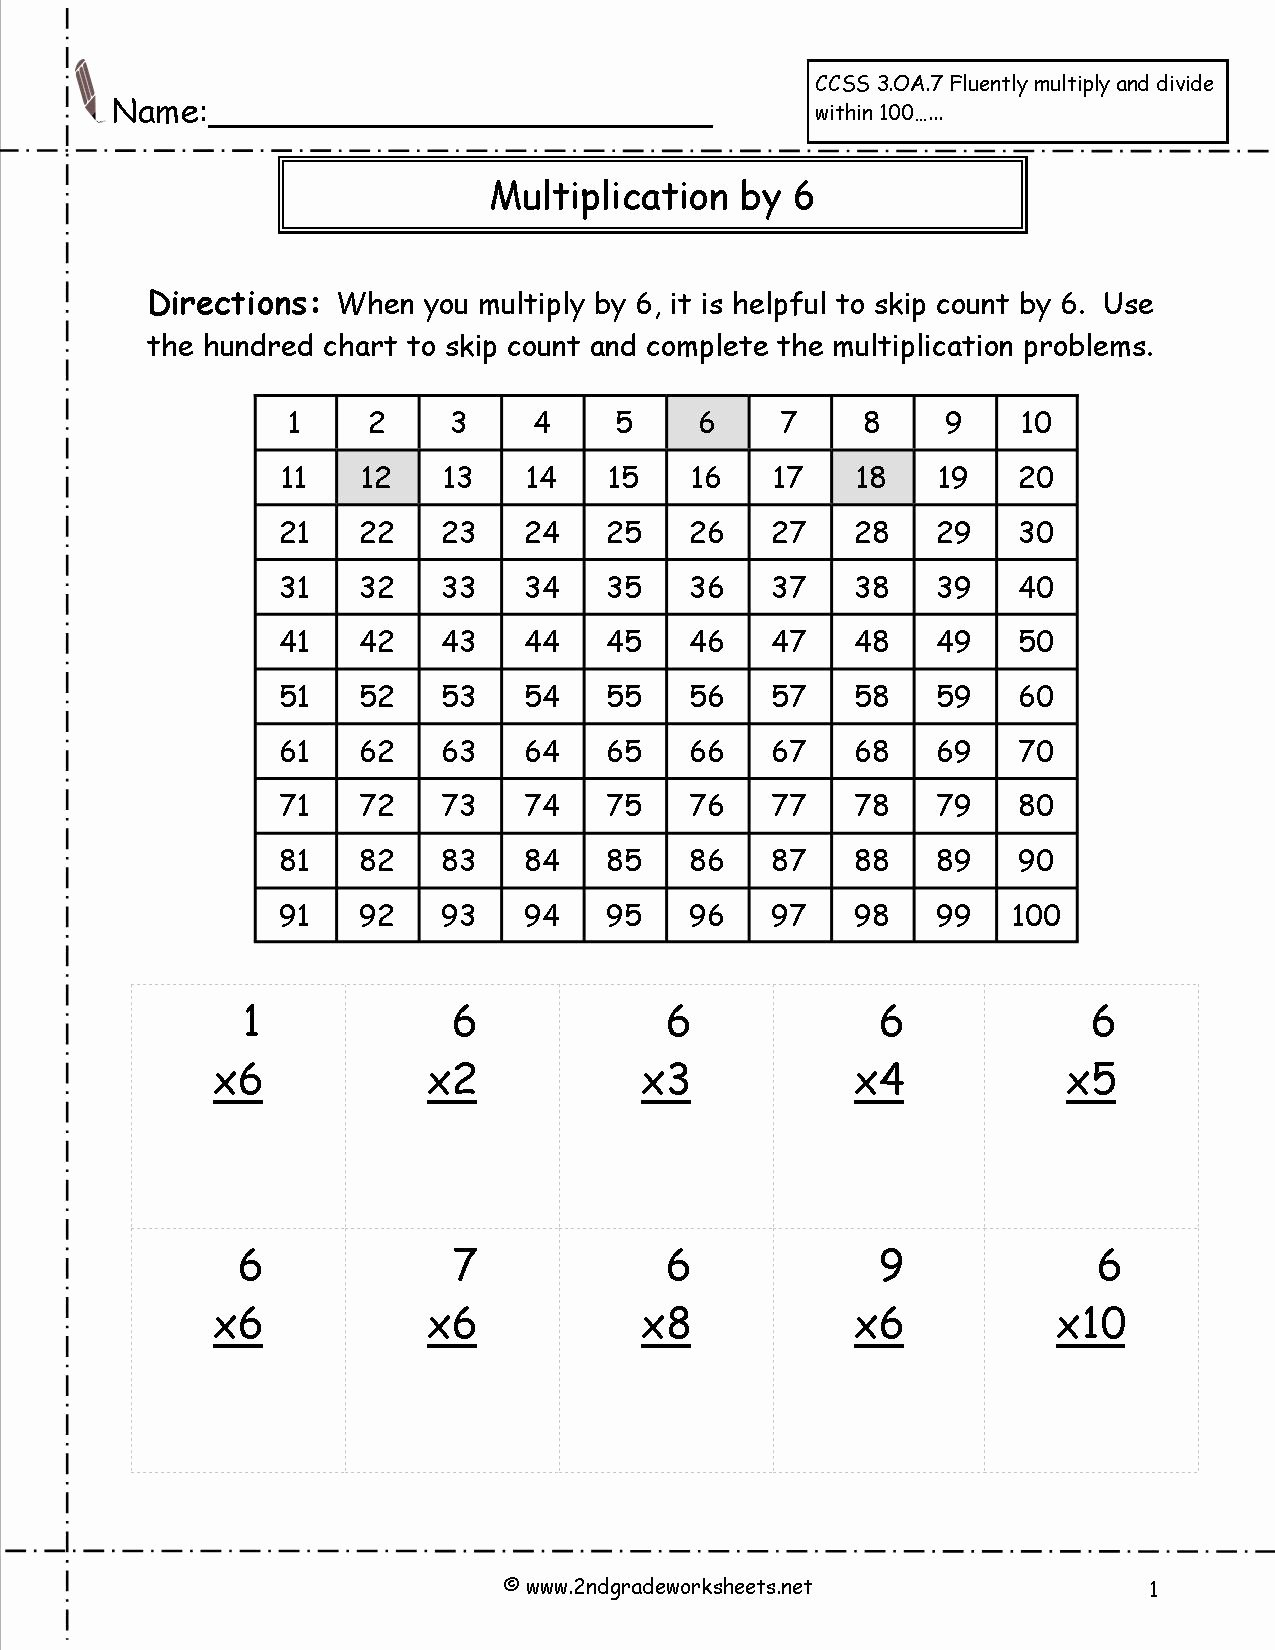 Multiplying by 6 Worksheet Lovely Multiplication Worksheets and Printouts